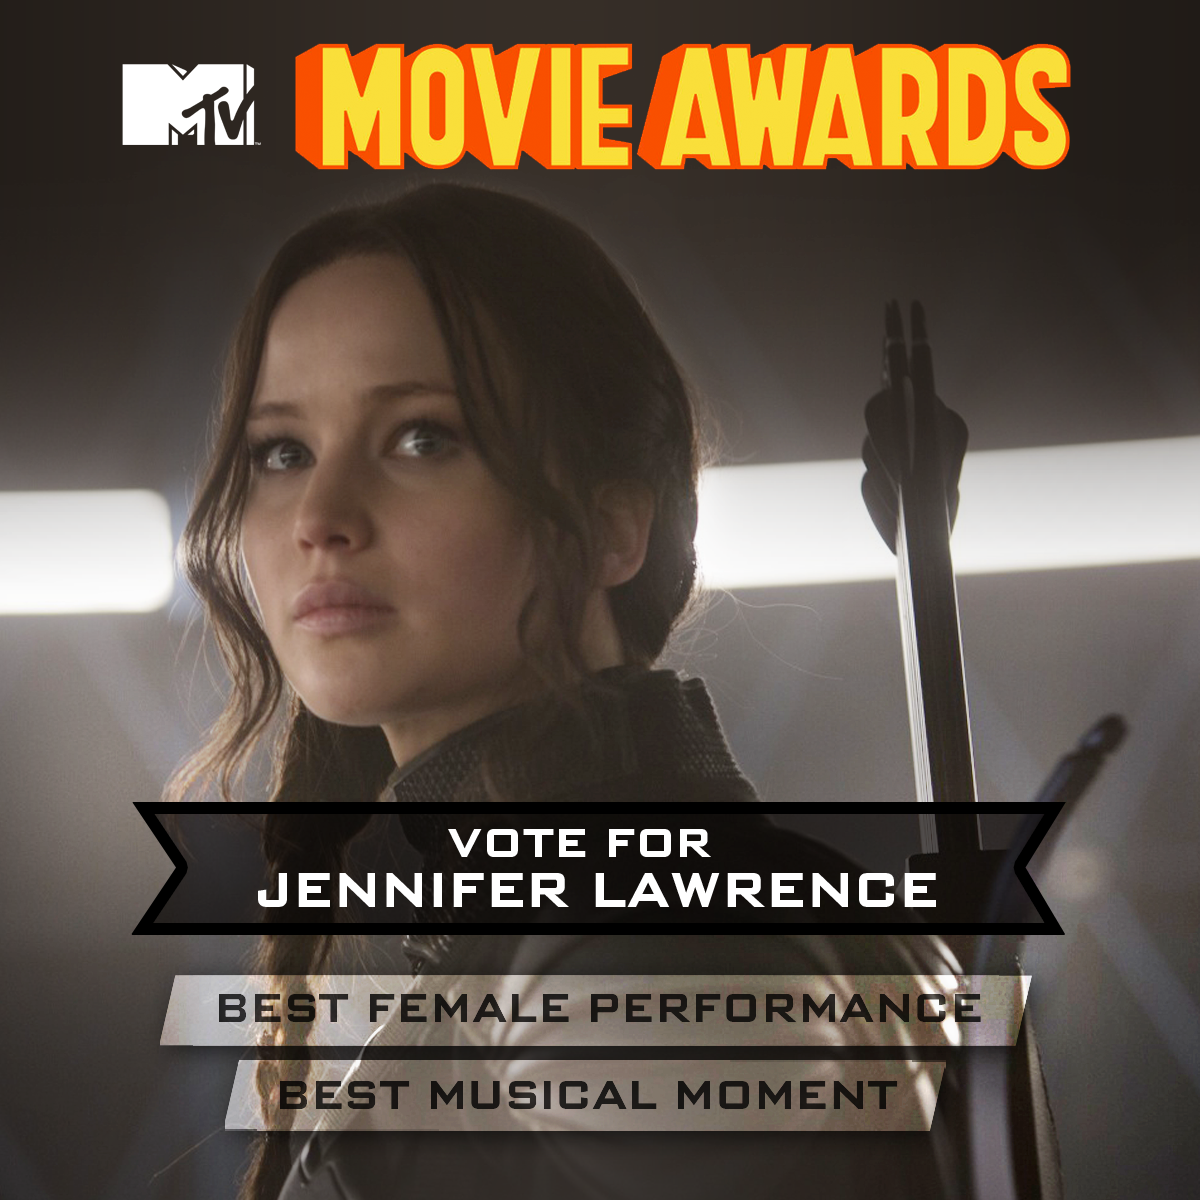 "Jennifer Lawrence is nominated for TWO MTV #MovieAwards - Best Female Performance and Best Musical Moment ""The Hanging Tree""! Vote NOW!"